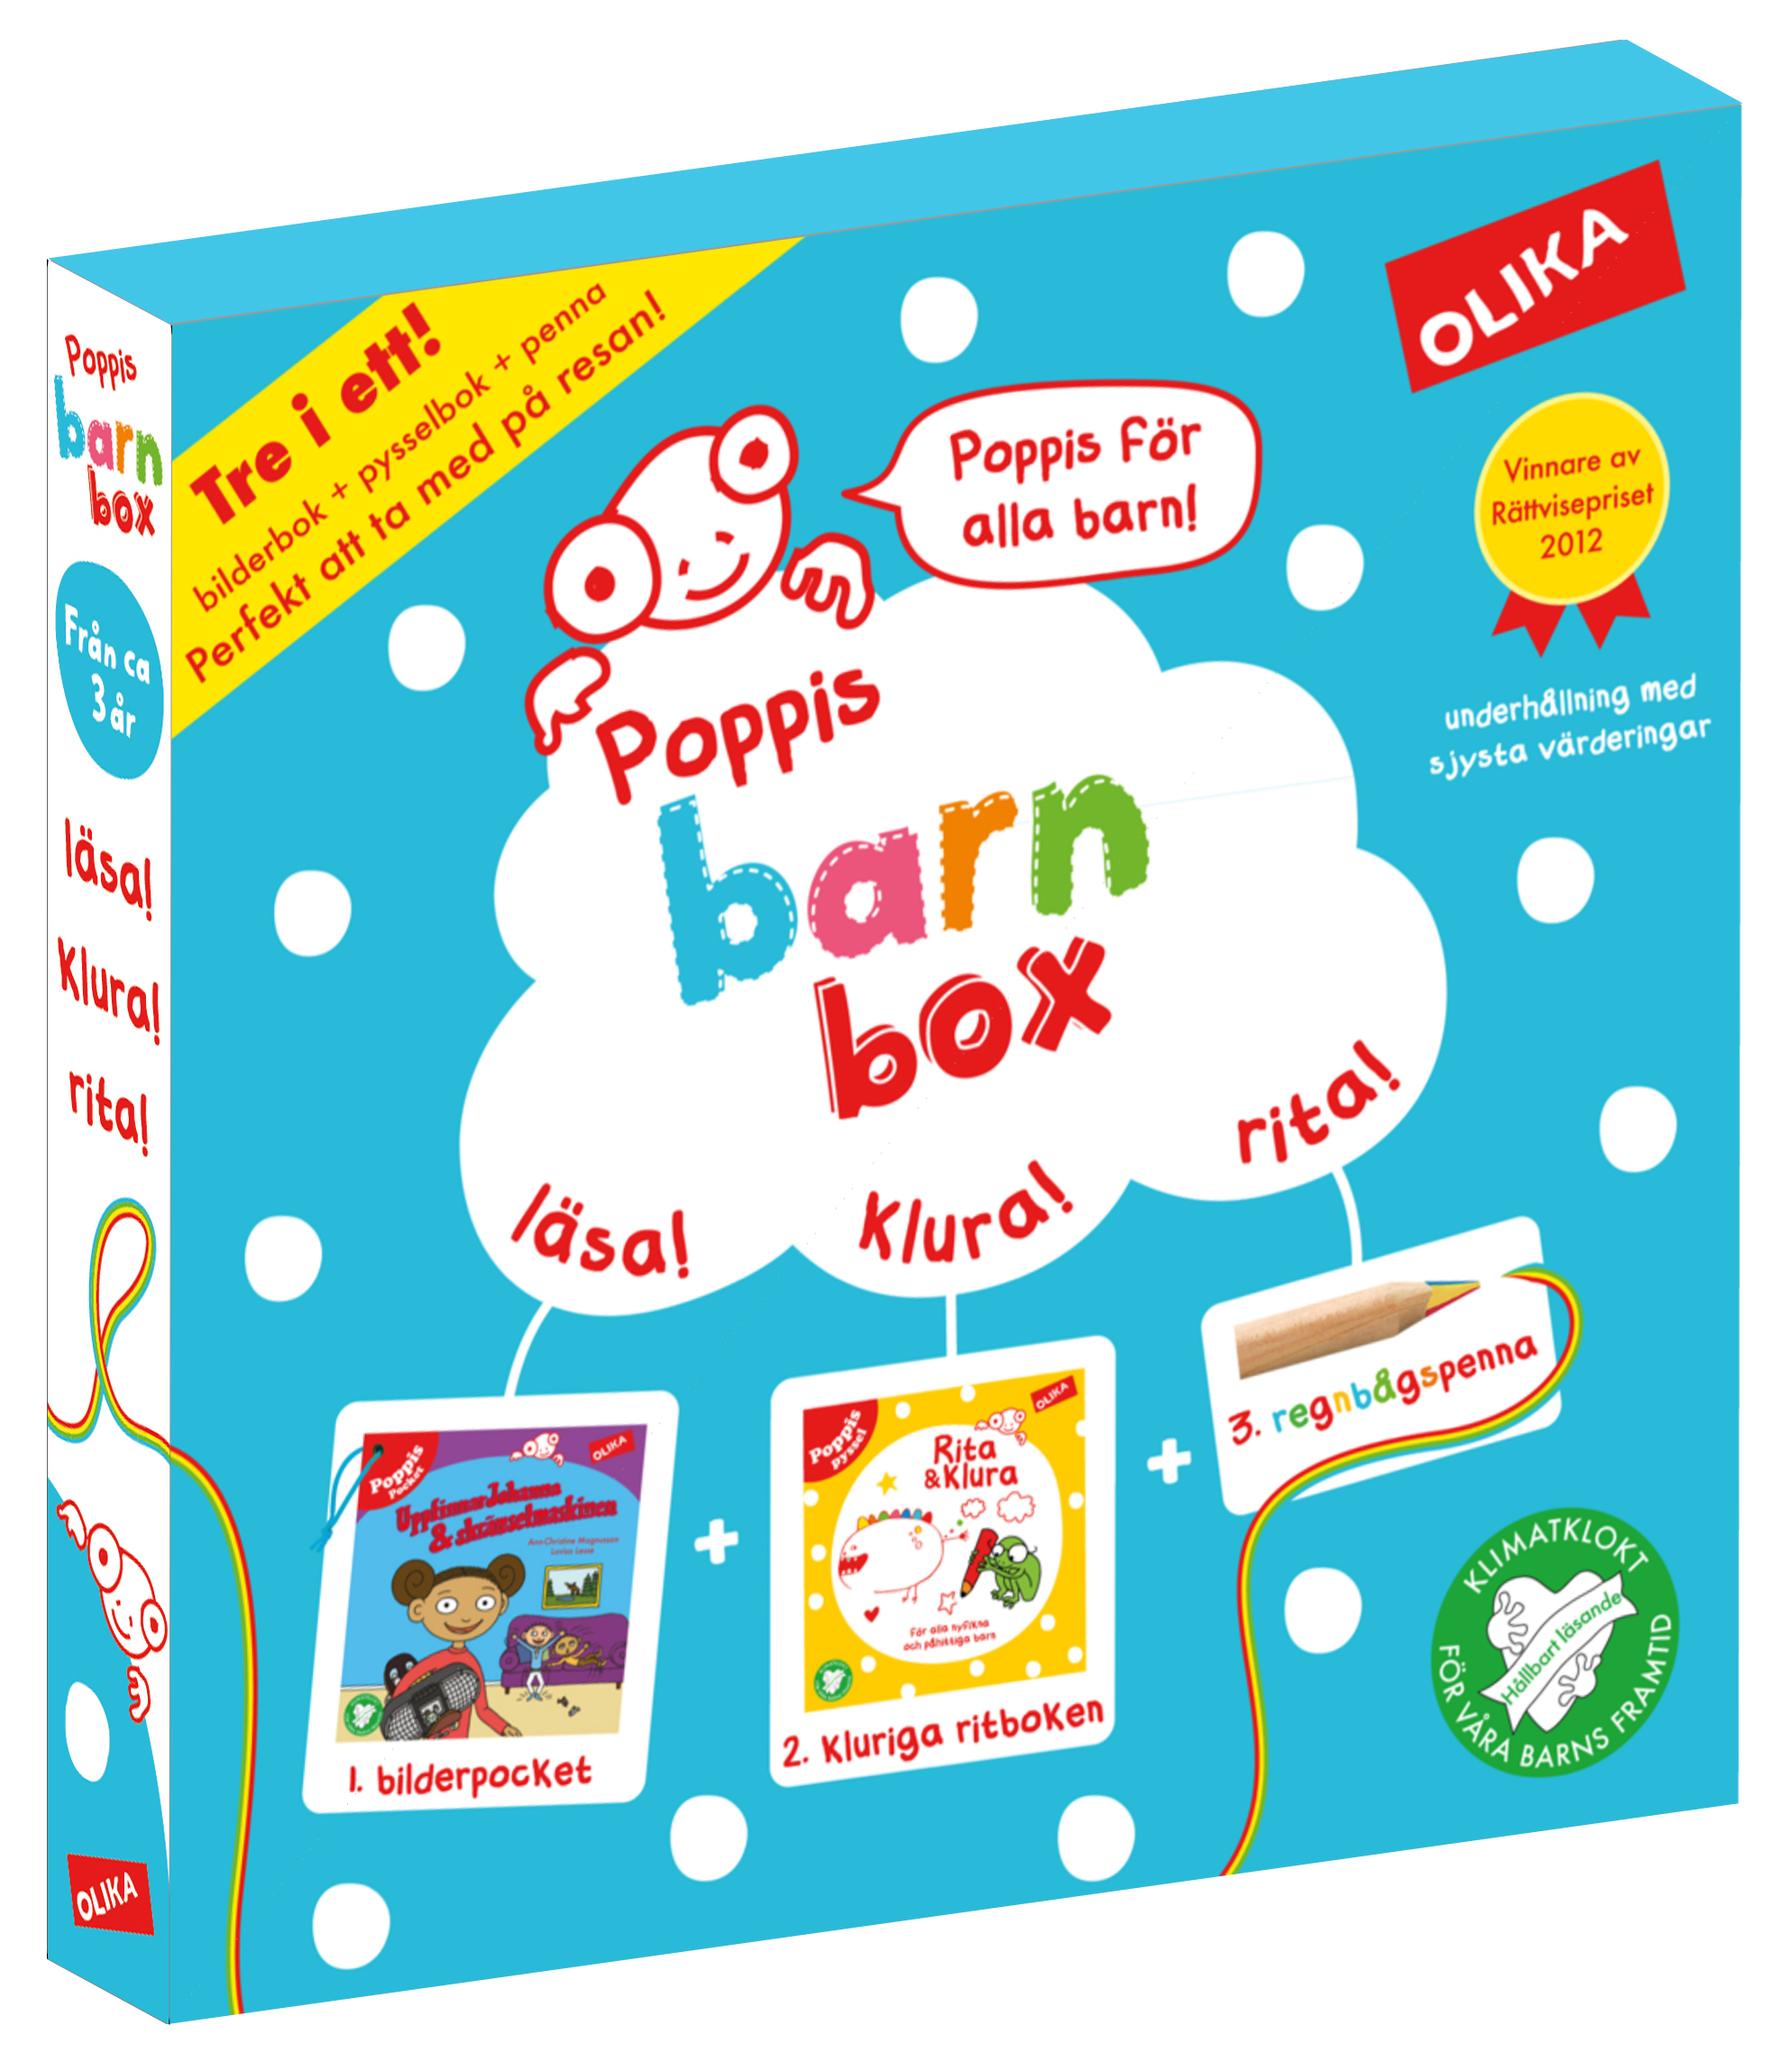 Poppis barnbox!